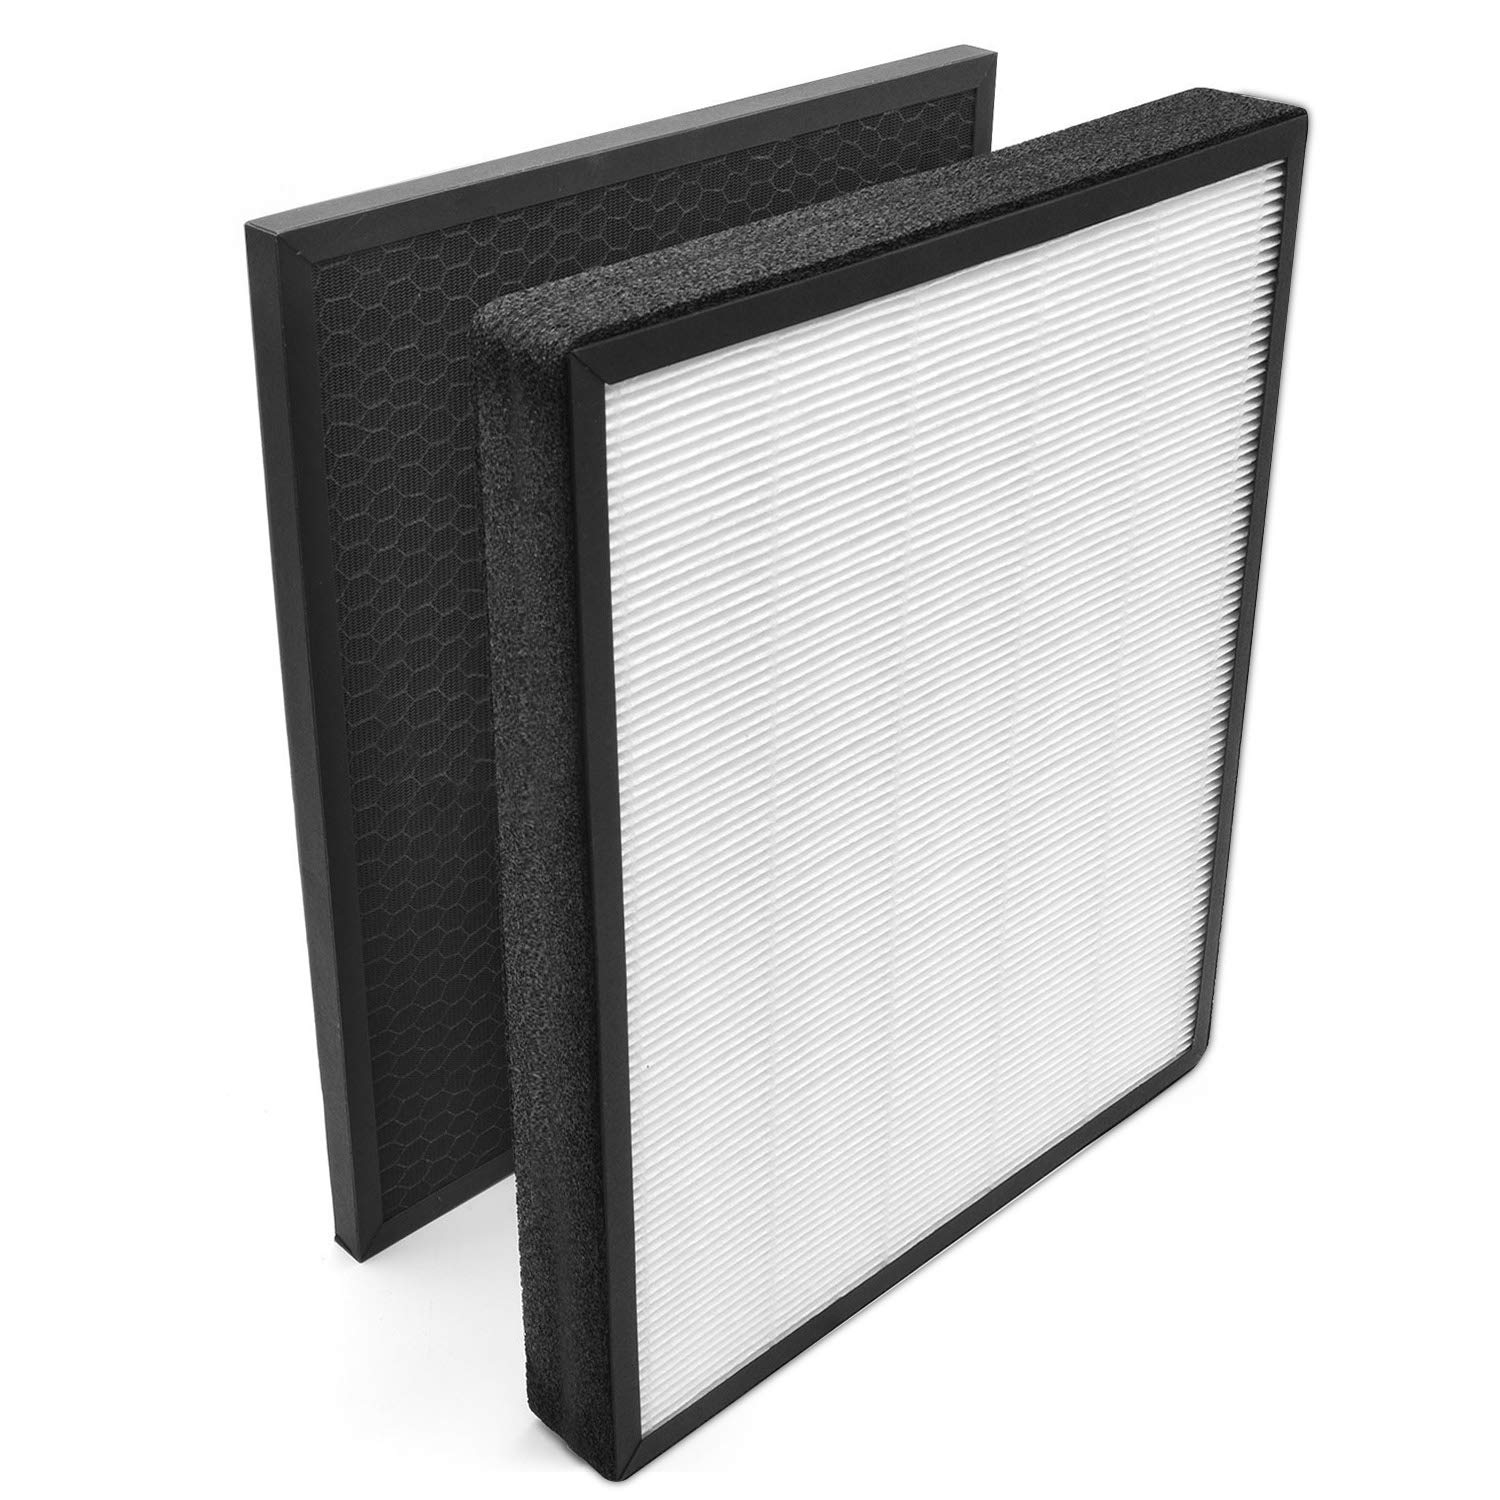 KOIOS Large Air Purifier with True HEPA Filter, Allergies Eliminator Air Cleaner for Large Rooms, Home, Dust & Pollen, Smoke and Pet Dander, 100% Ozone Free (Replacement Filter Black)